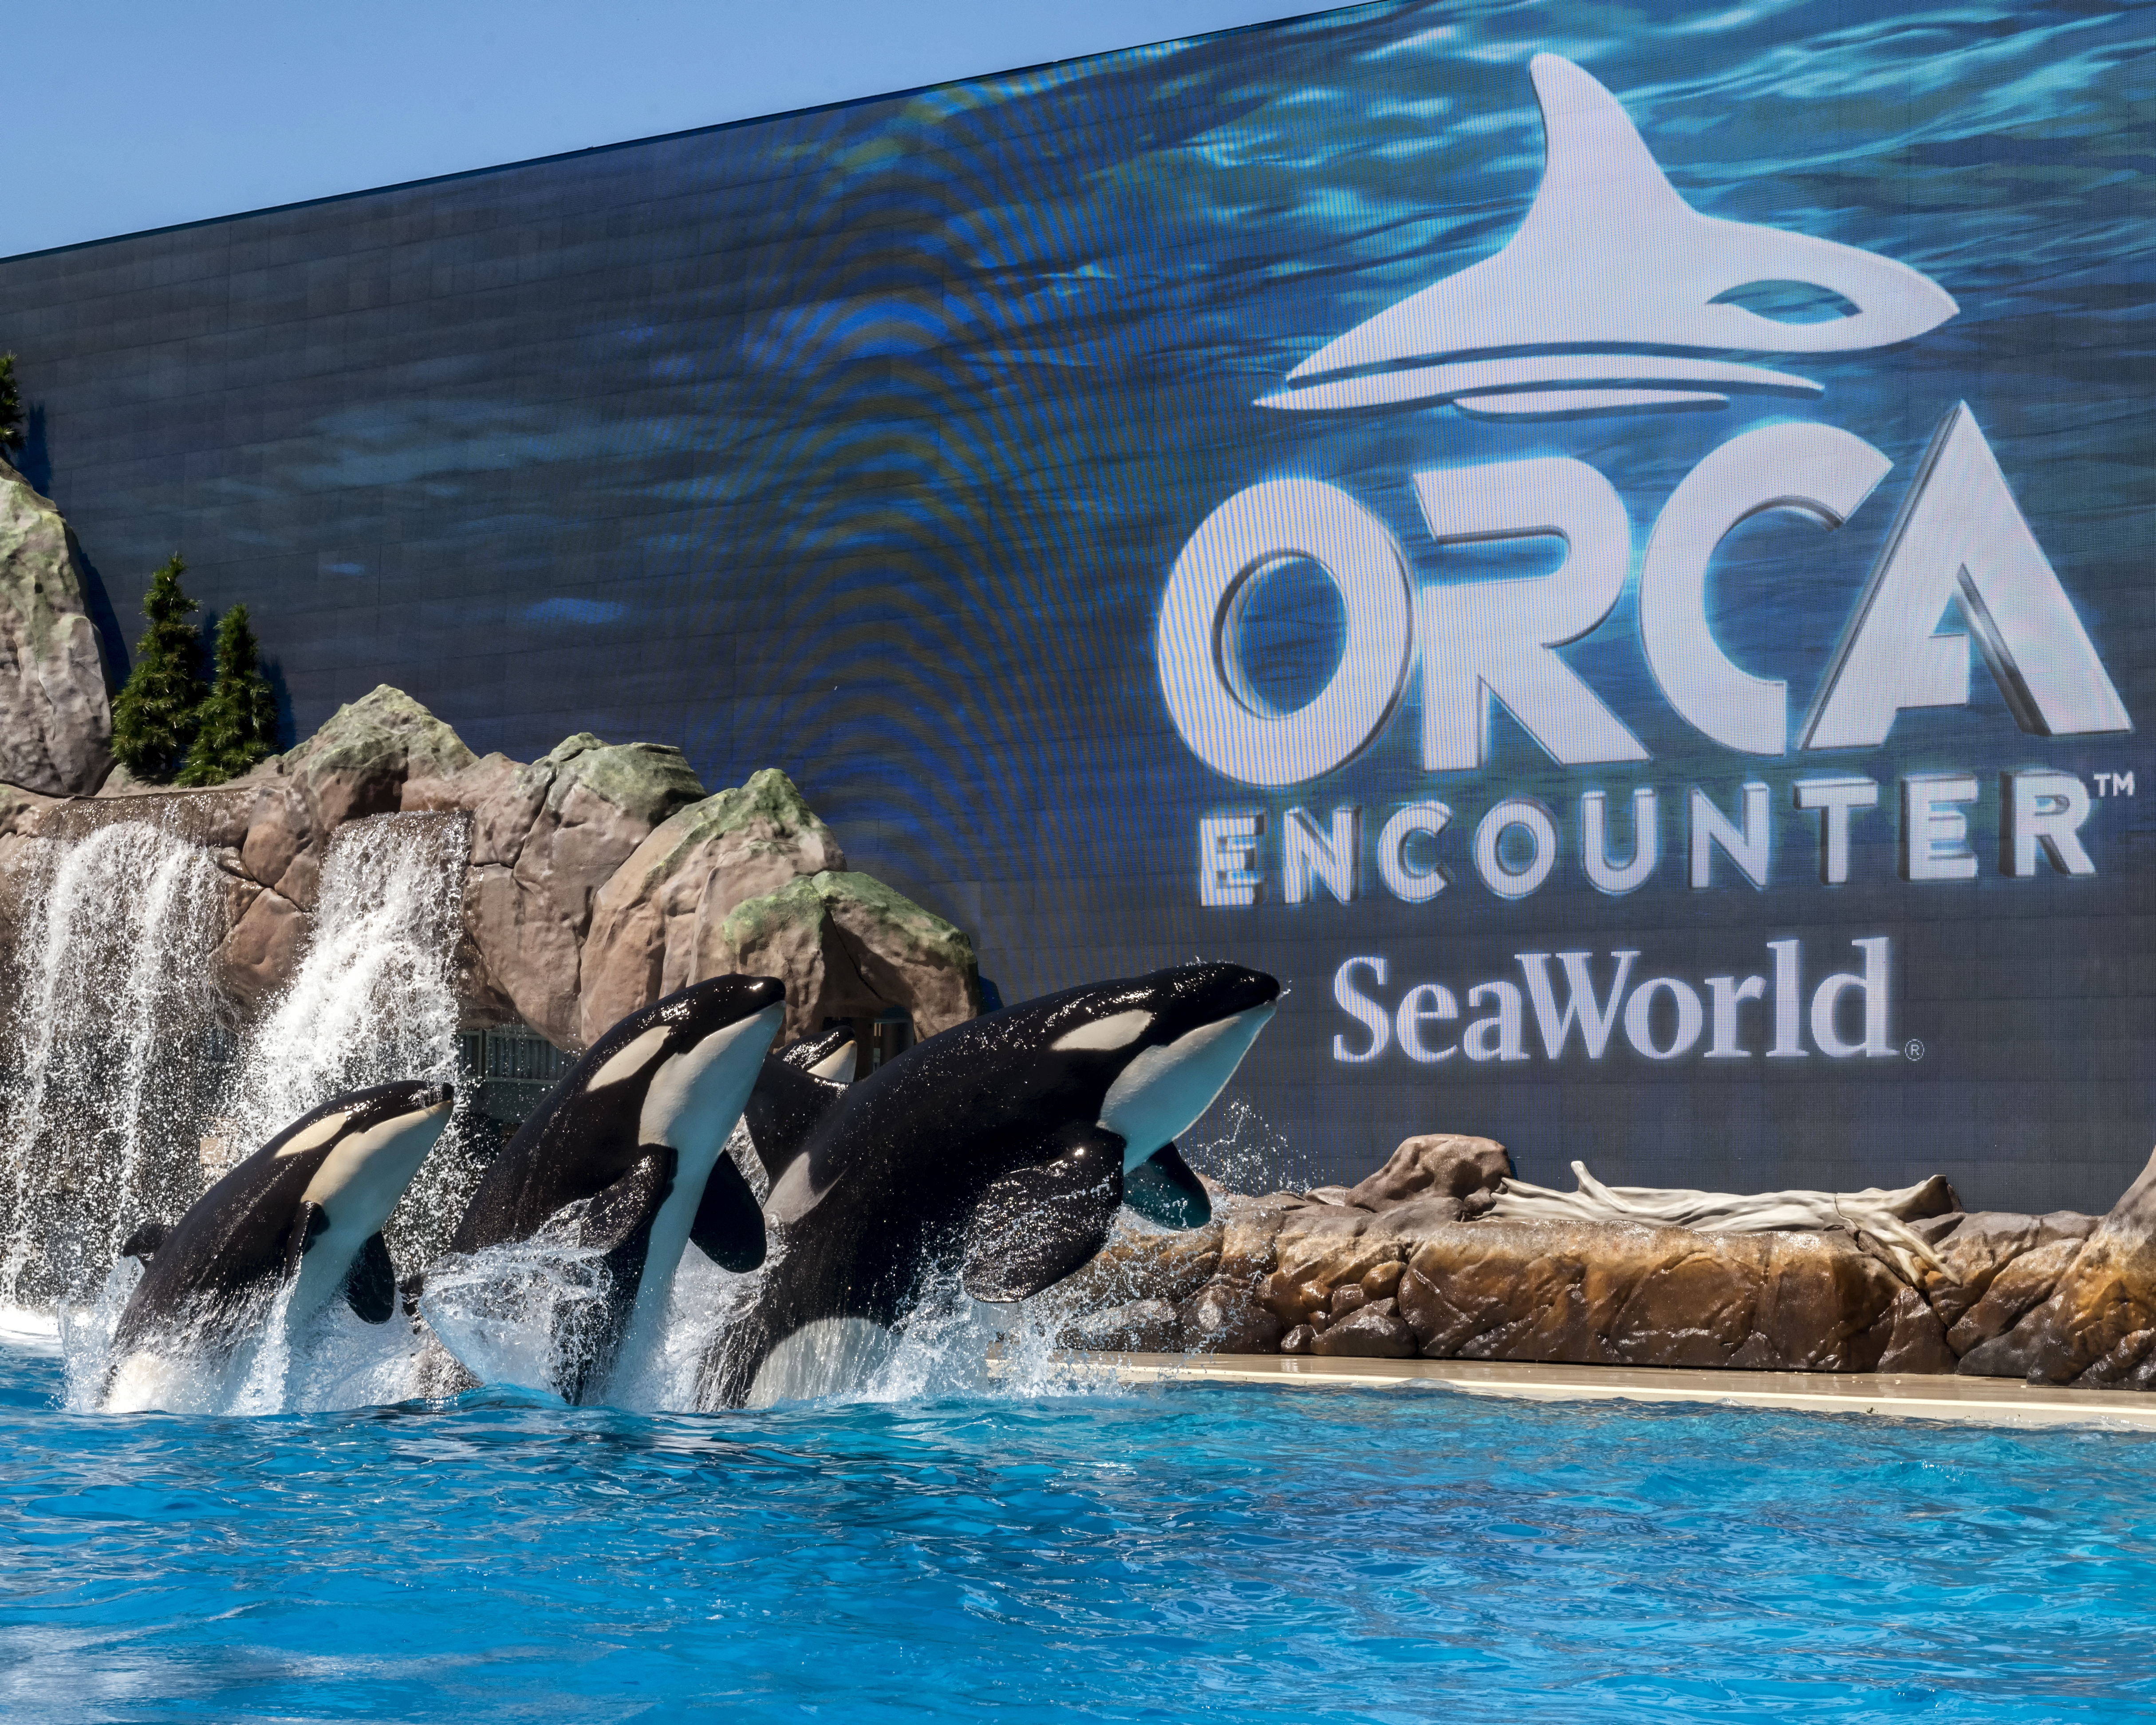 orca-encounter- Sea World San Diego